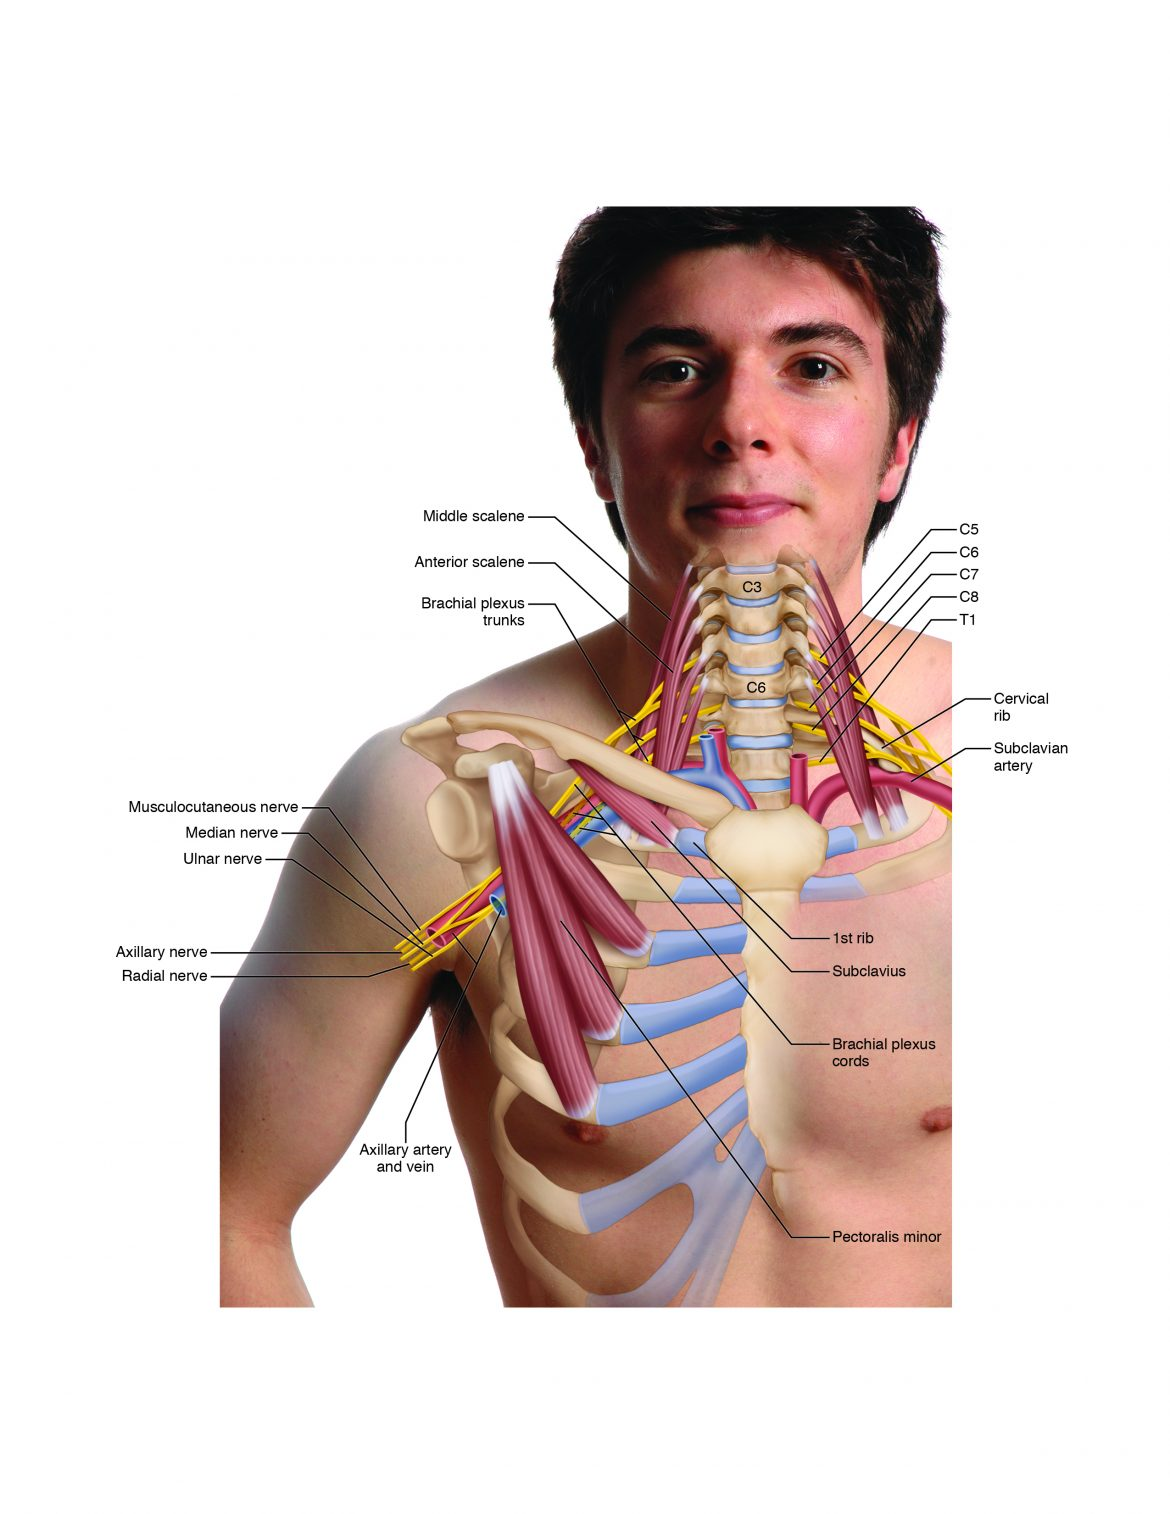 there are four types/locations of possible thoracic outlet syndrome seen here